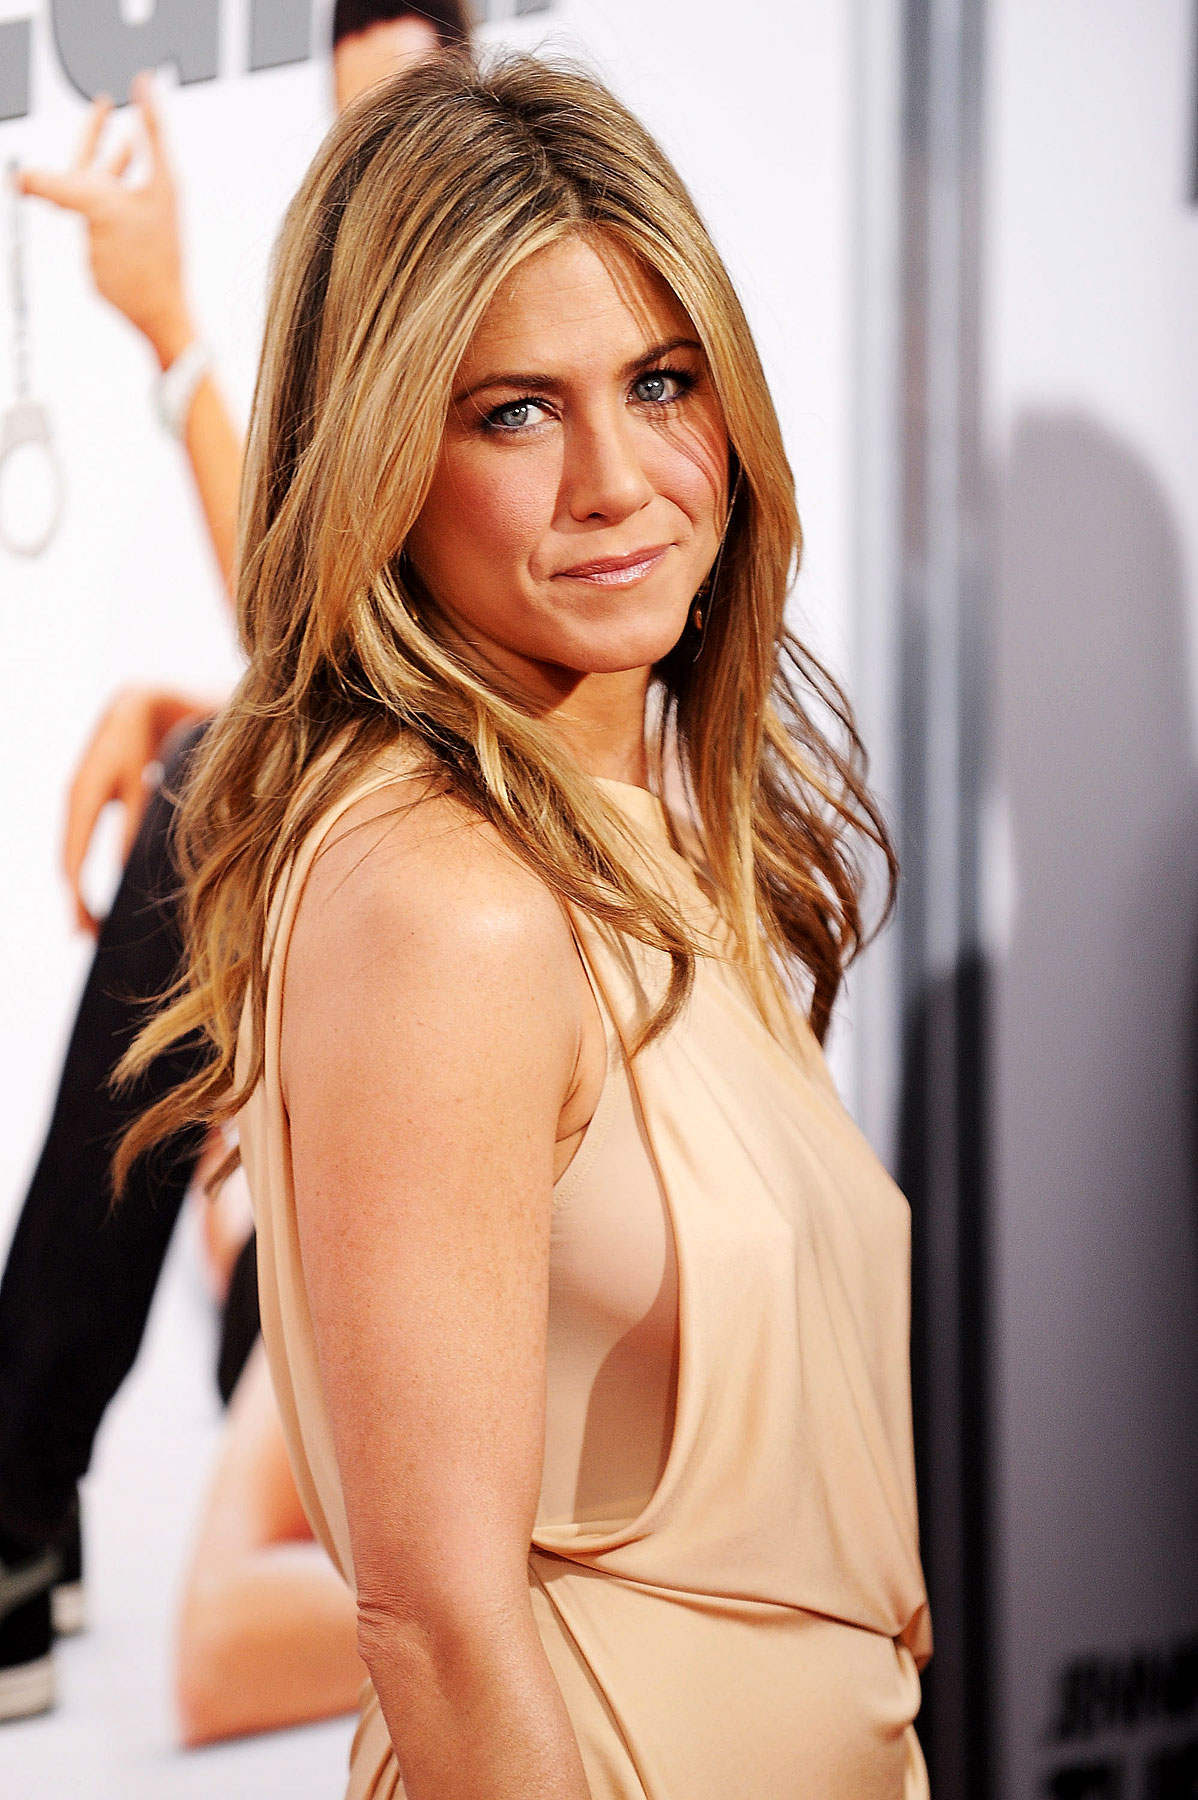 Jennifer Aniston Goes Braless For 'Bounty Hunter' (PHOTOS)